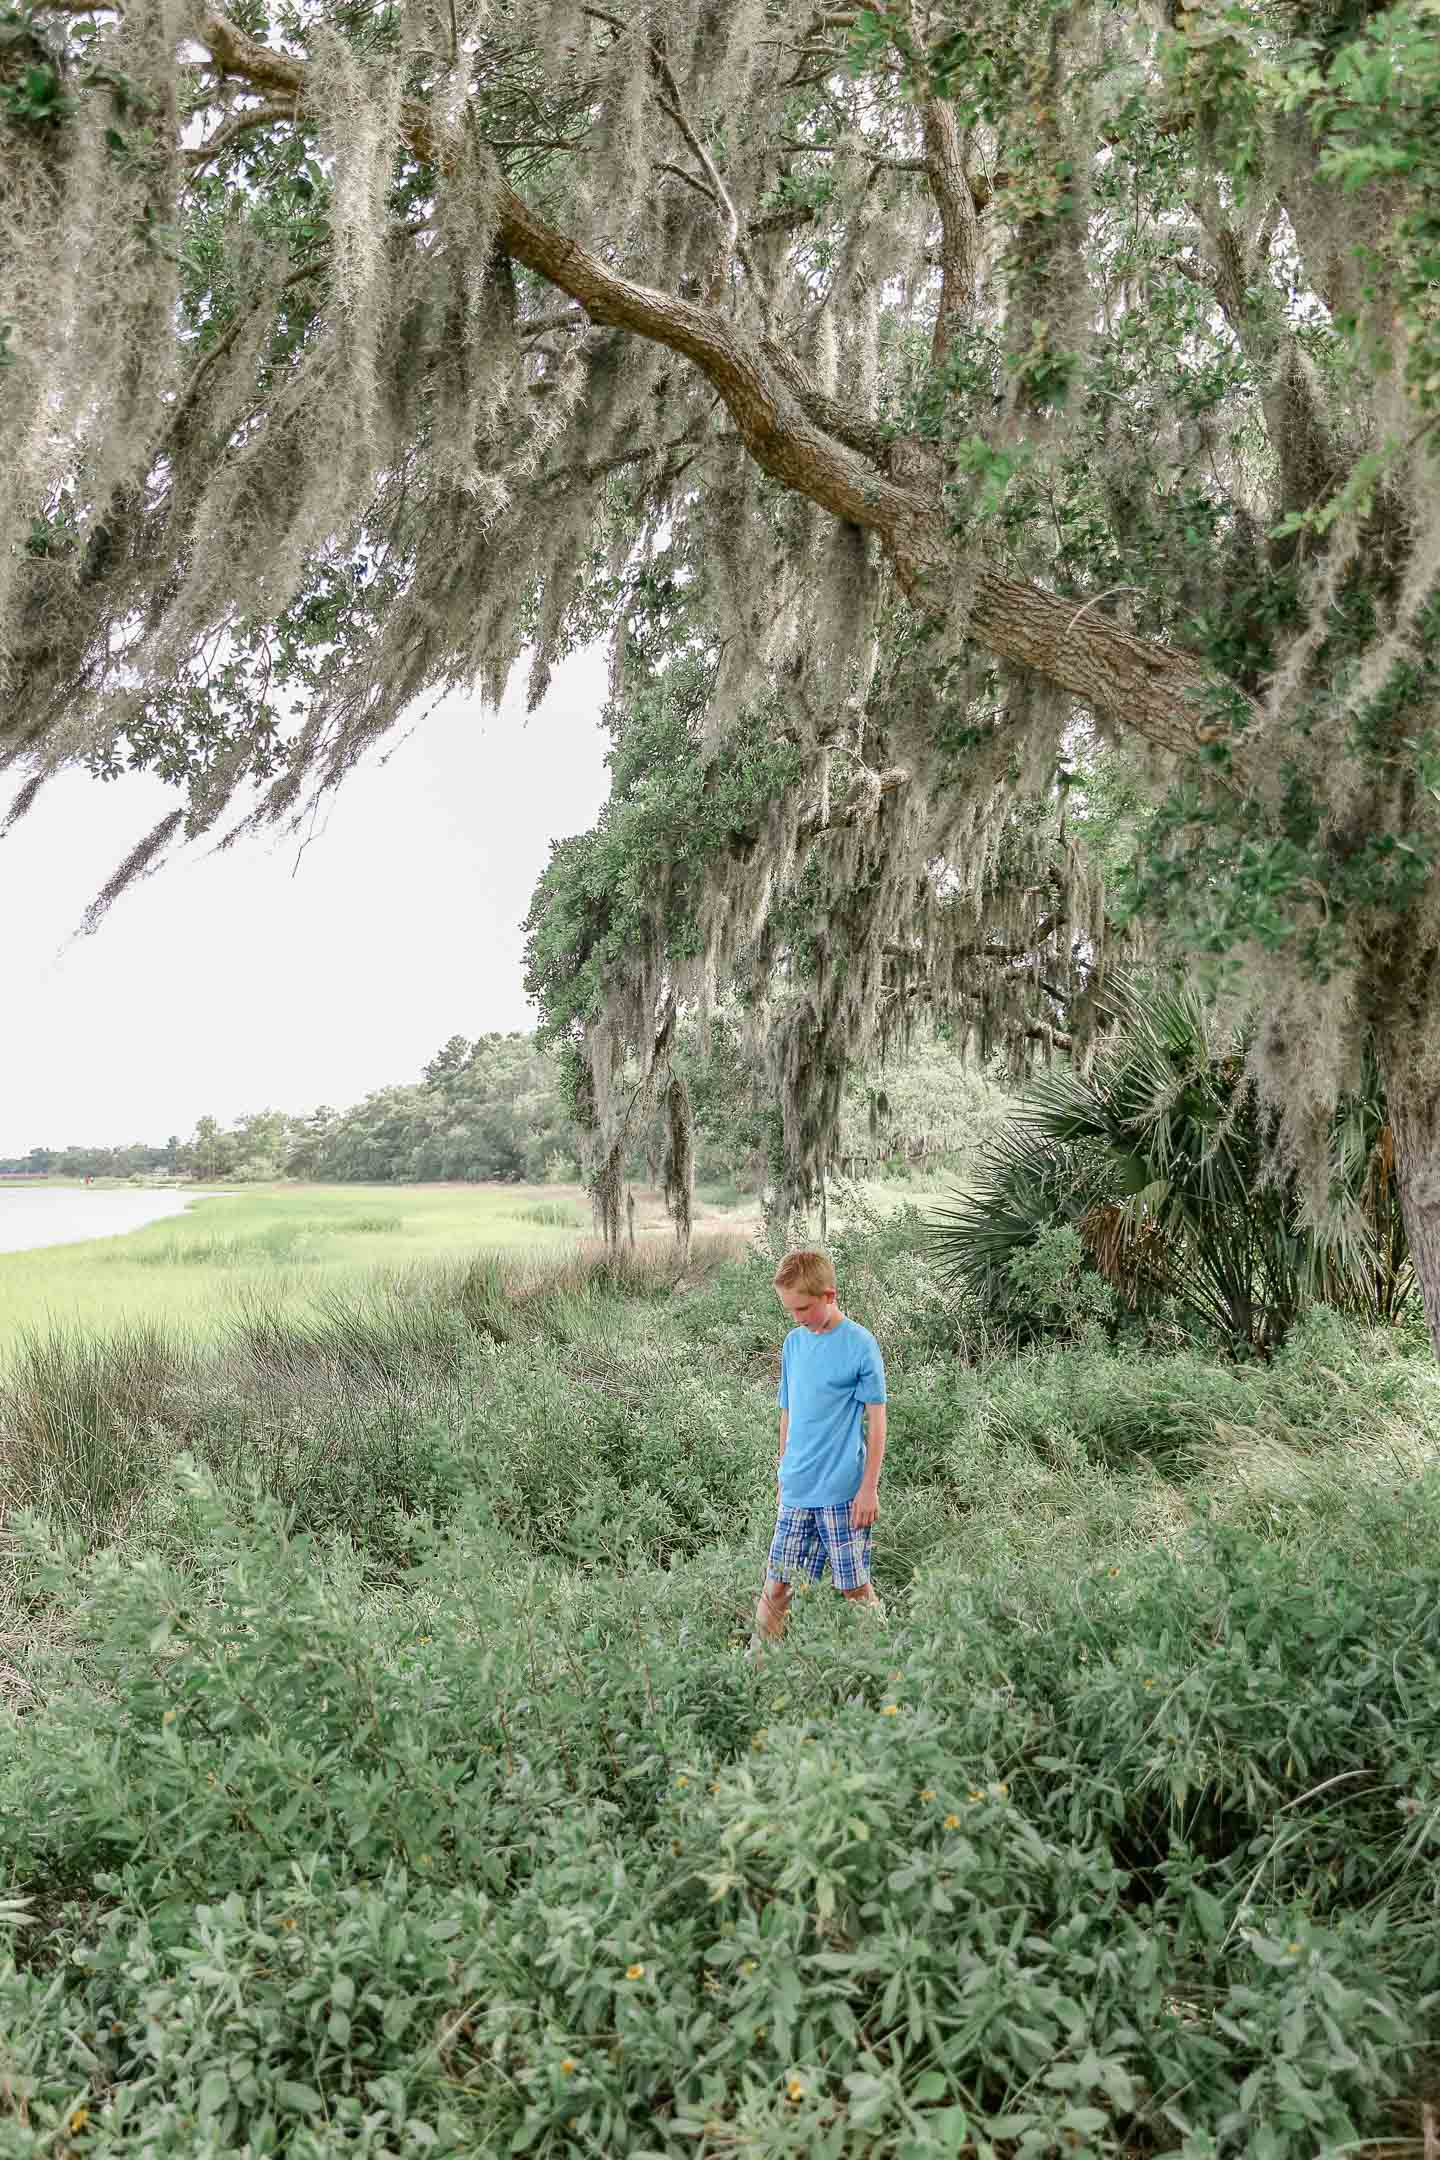 A boy under a tree that's draped with Spanish moss.